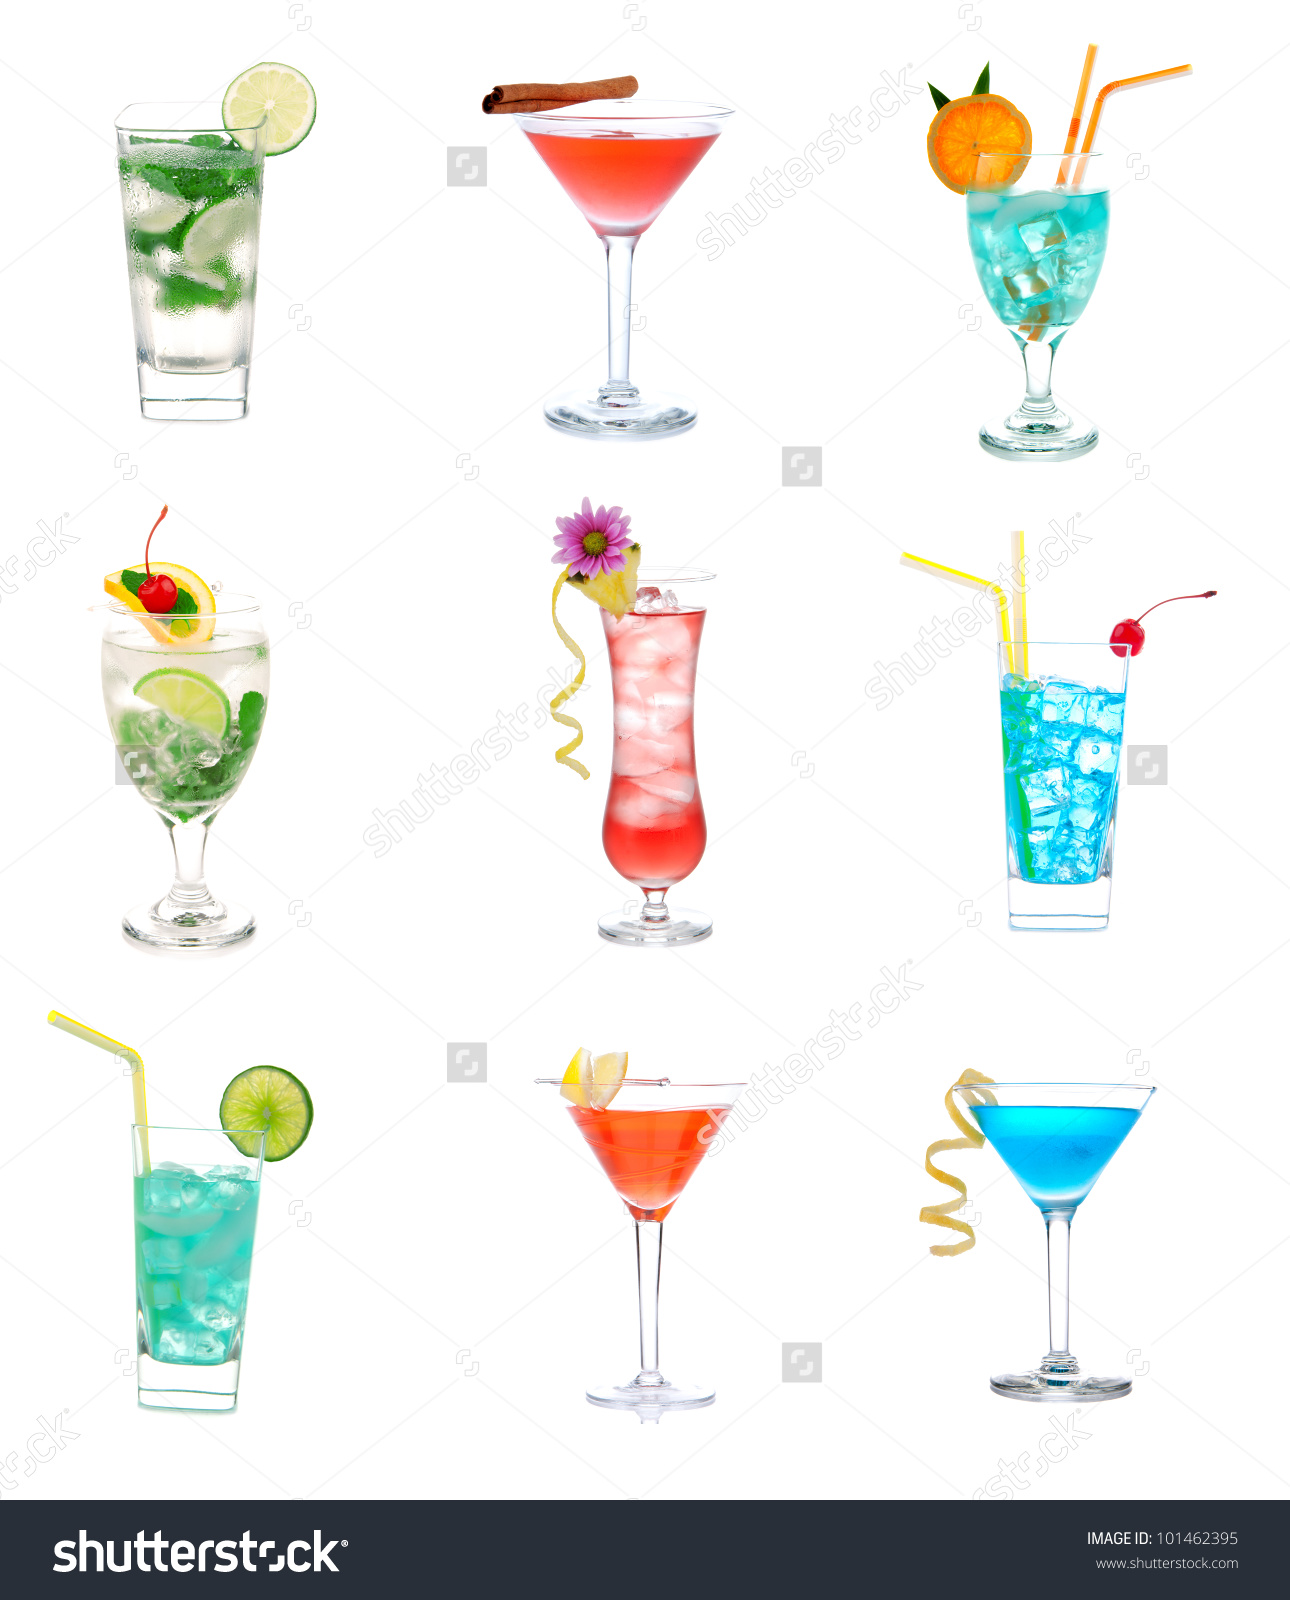 cocktail collage clipart #15